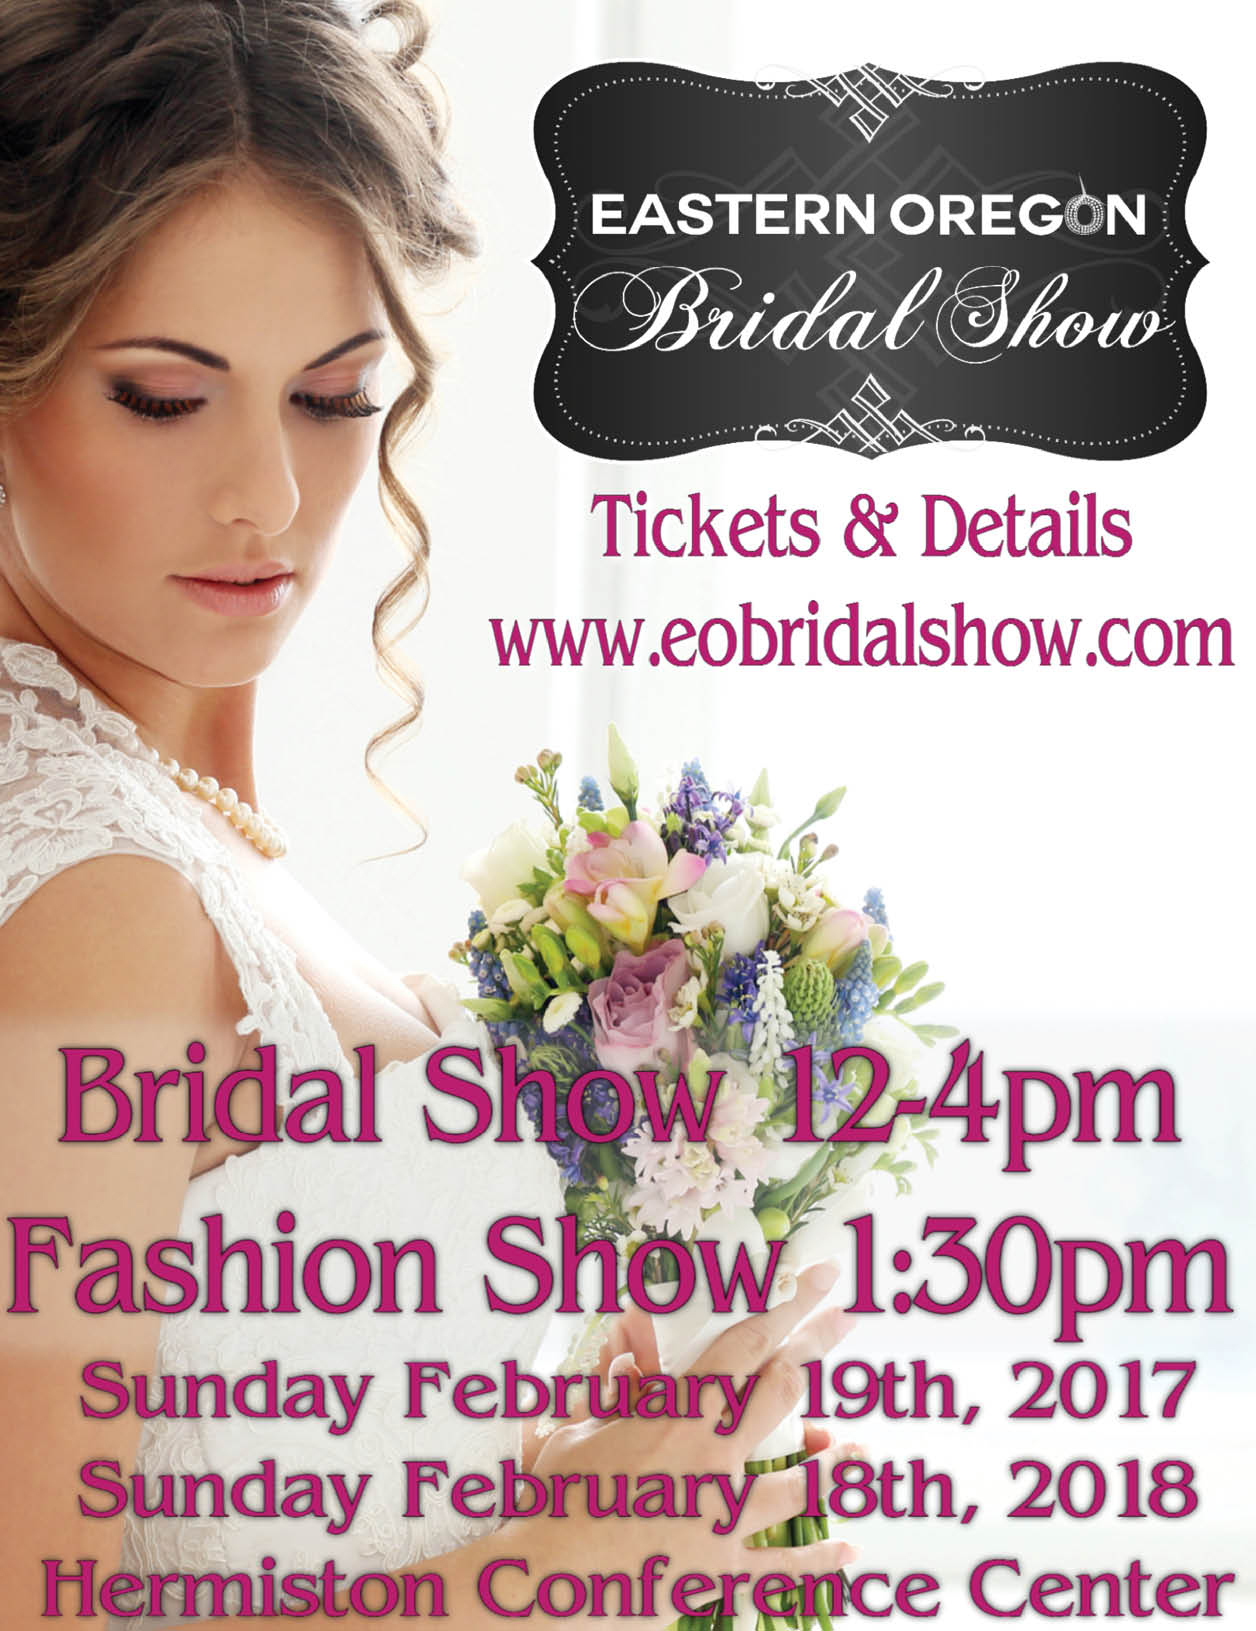 2017 Eastern Oregon Bridal Show WRG